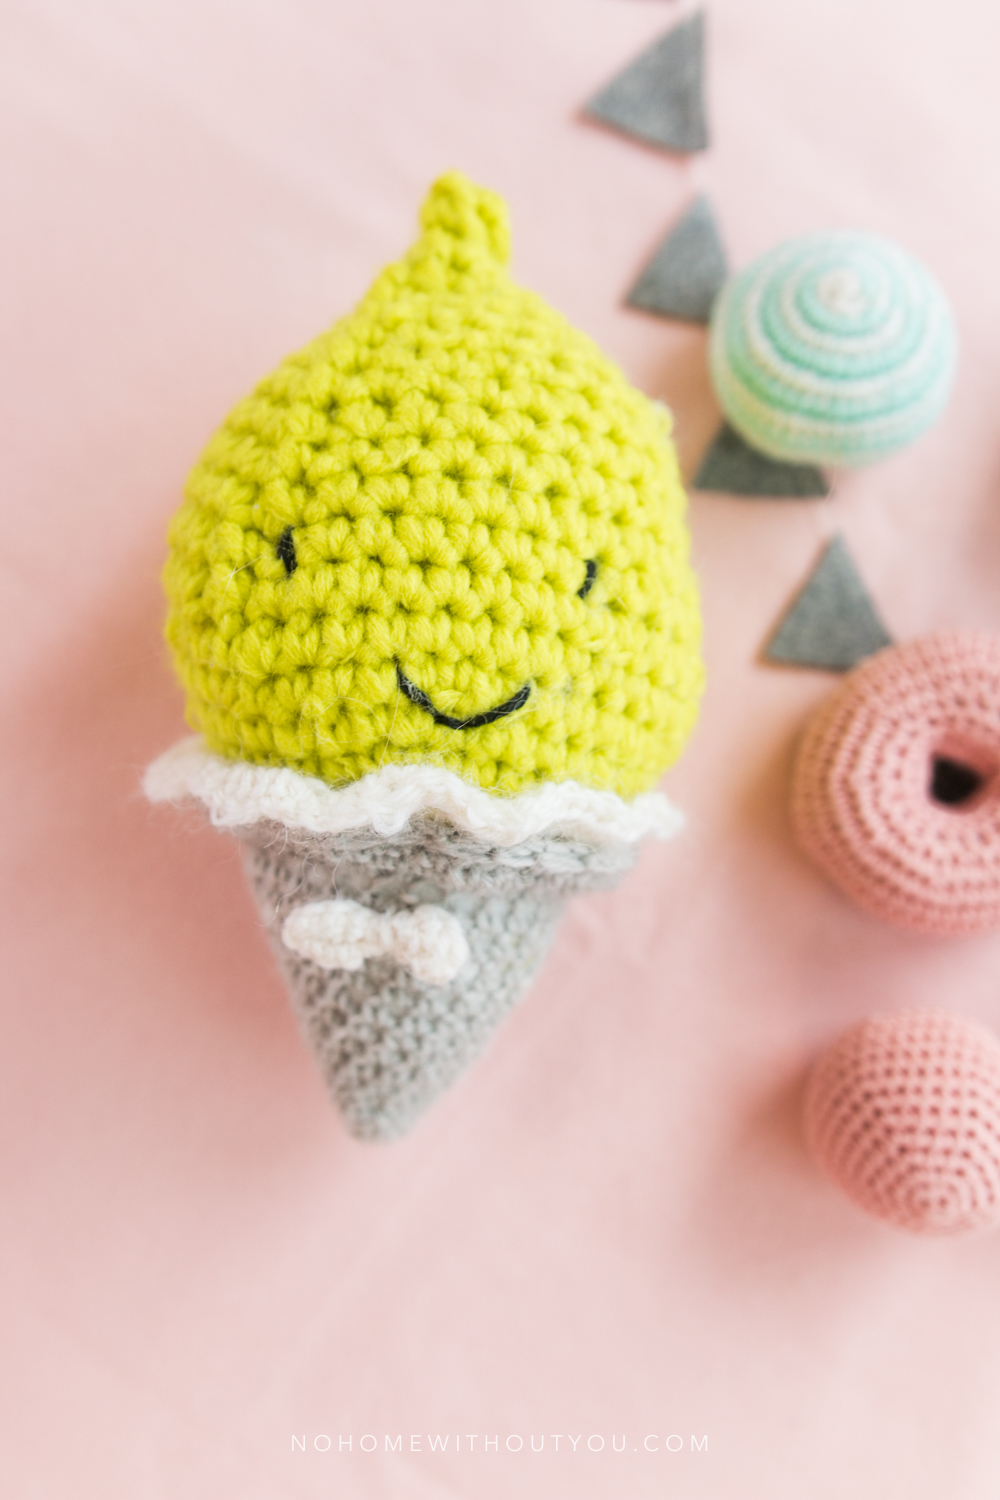 Ice Cream Party - Free amigurumi crochet pattern -   No Home Without You blog (1 of 2)